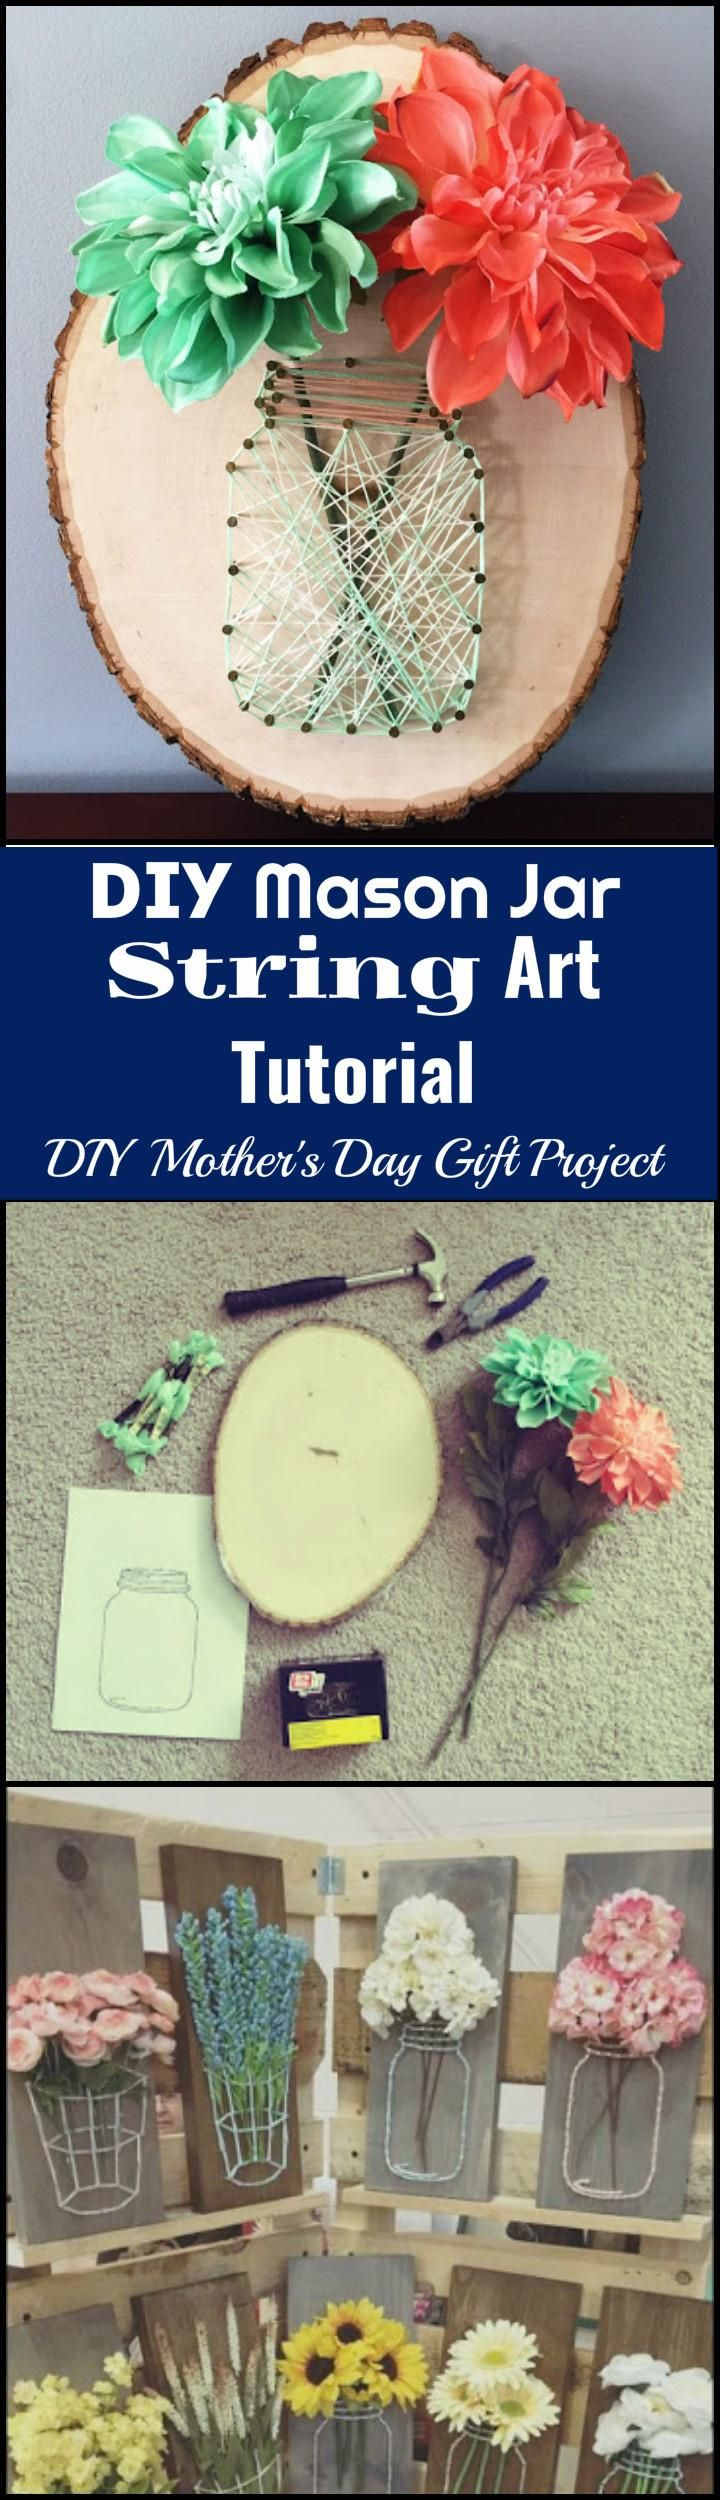 Diy Mason Jar String Art Mother S Day Gift Idea 300 Mothers Gifts You Can Make For Your Mom Page 8 Of 24 Crafts